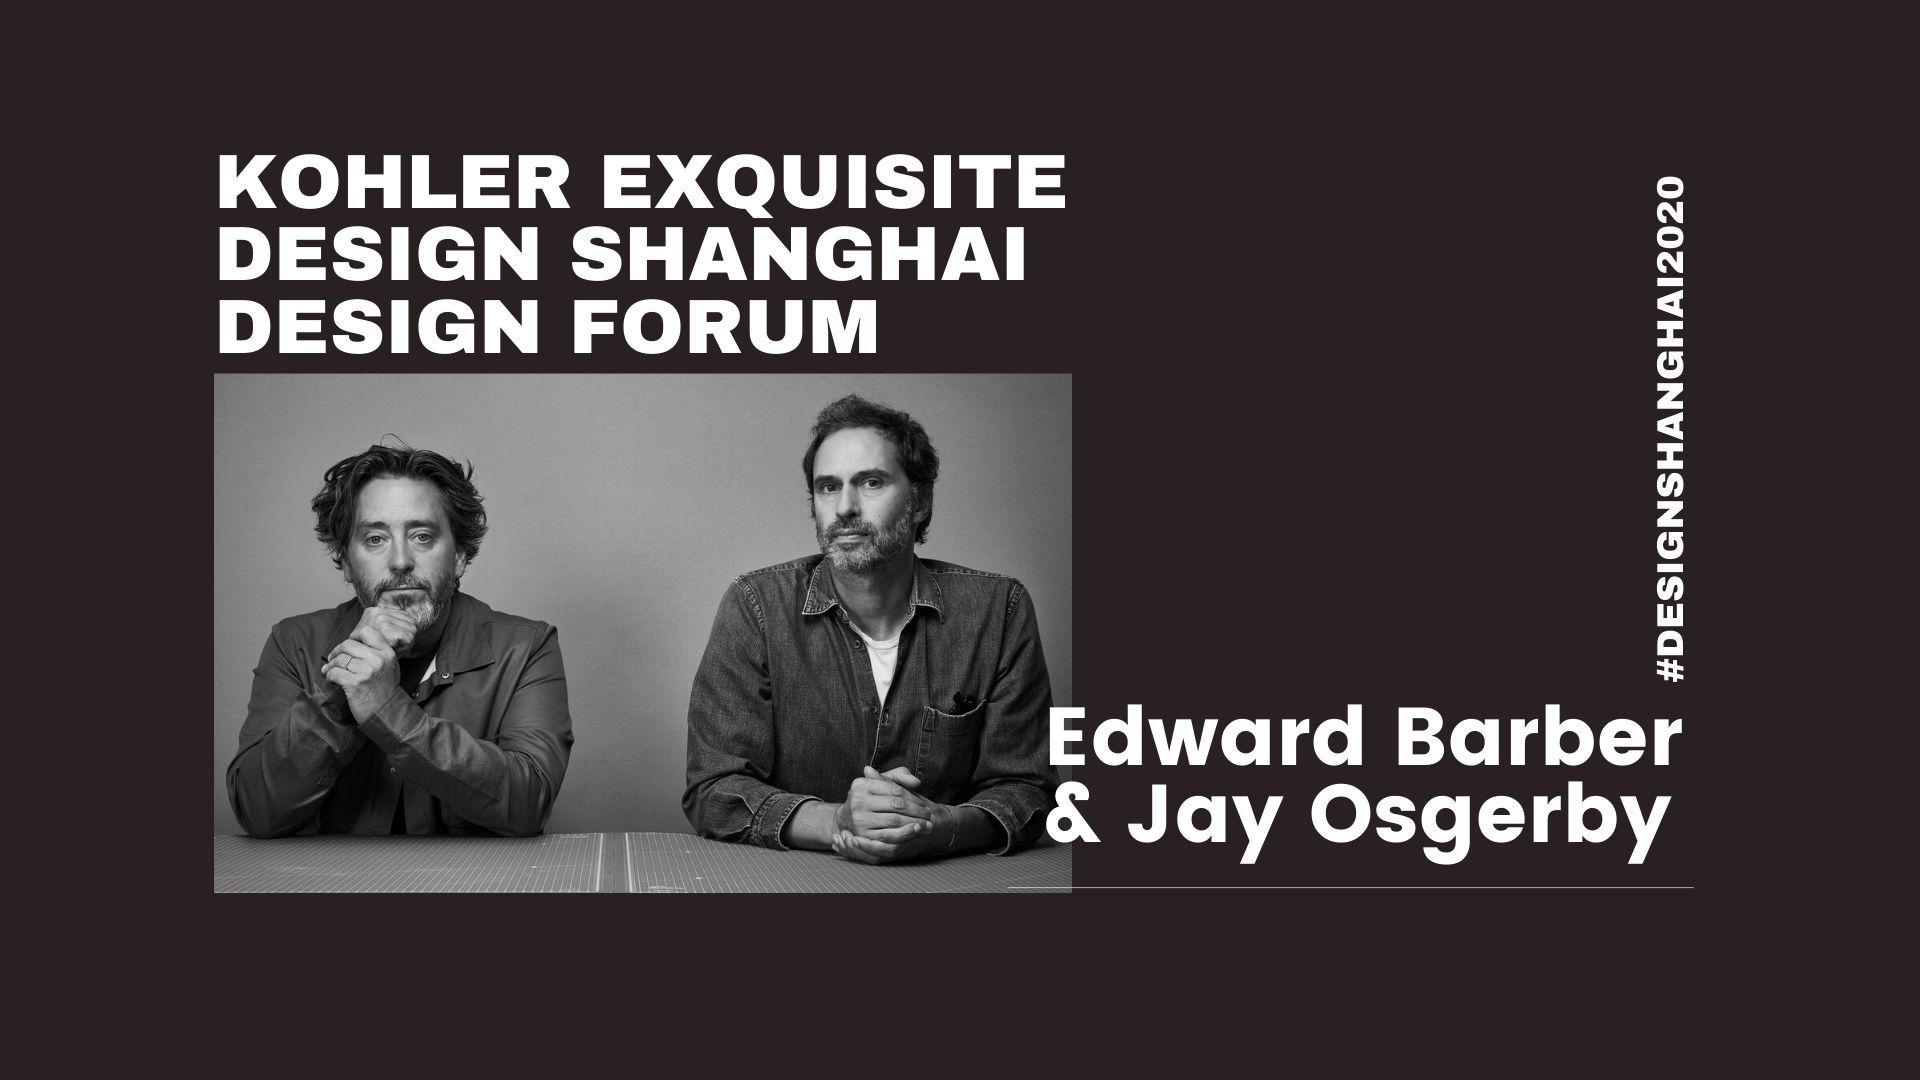 Edward Barber & Jay Osgerby: Global, Local, Future of Work